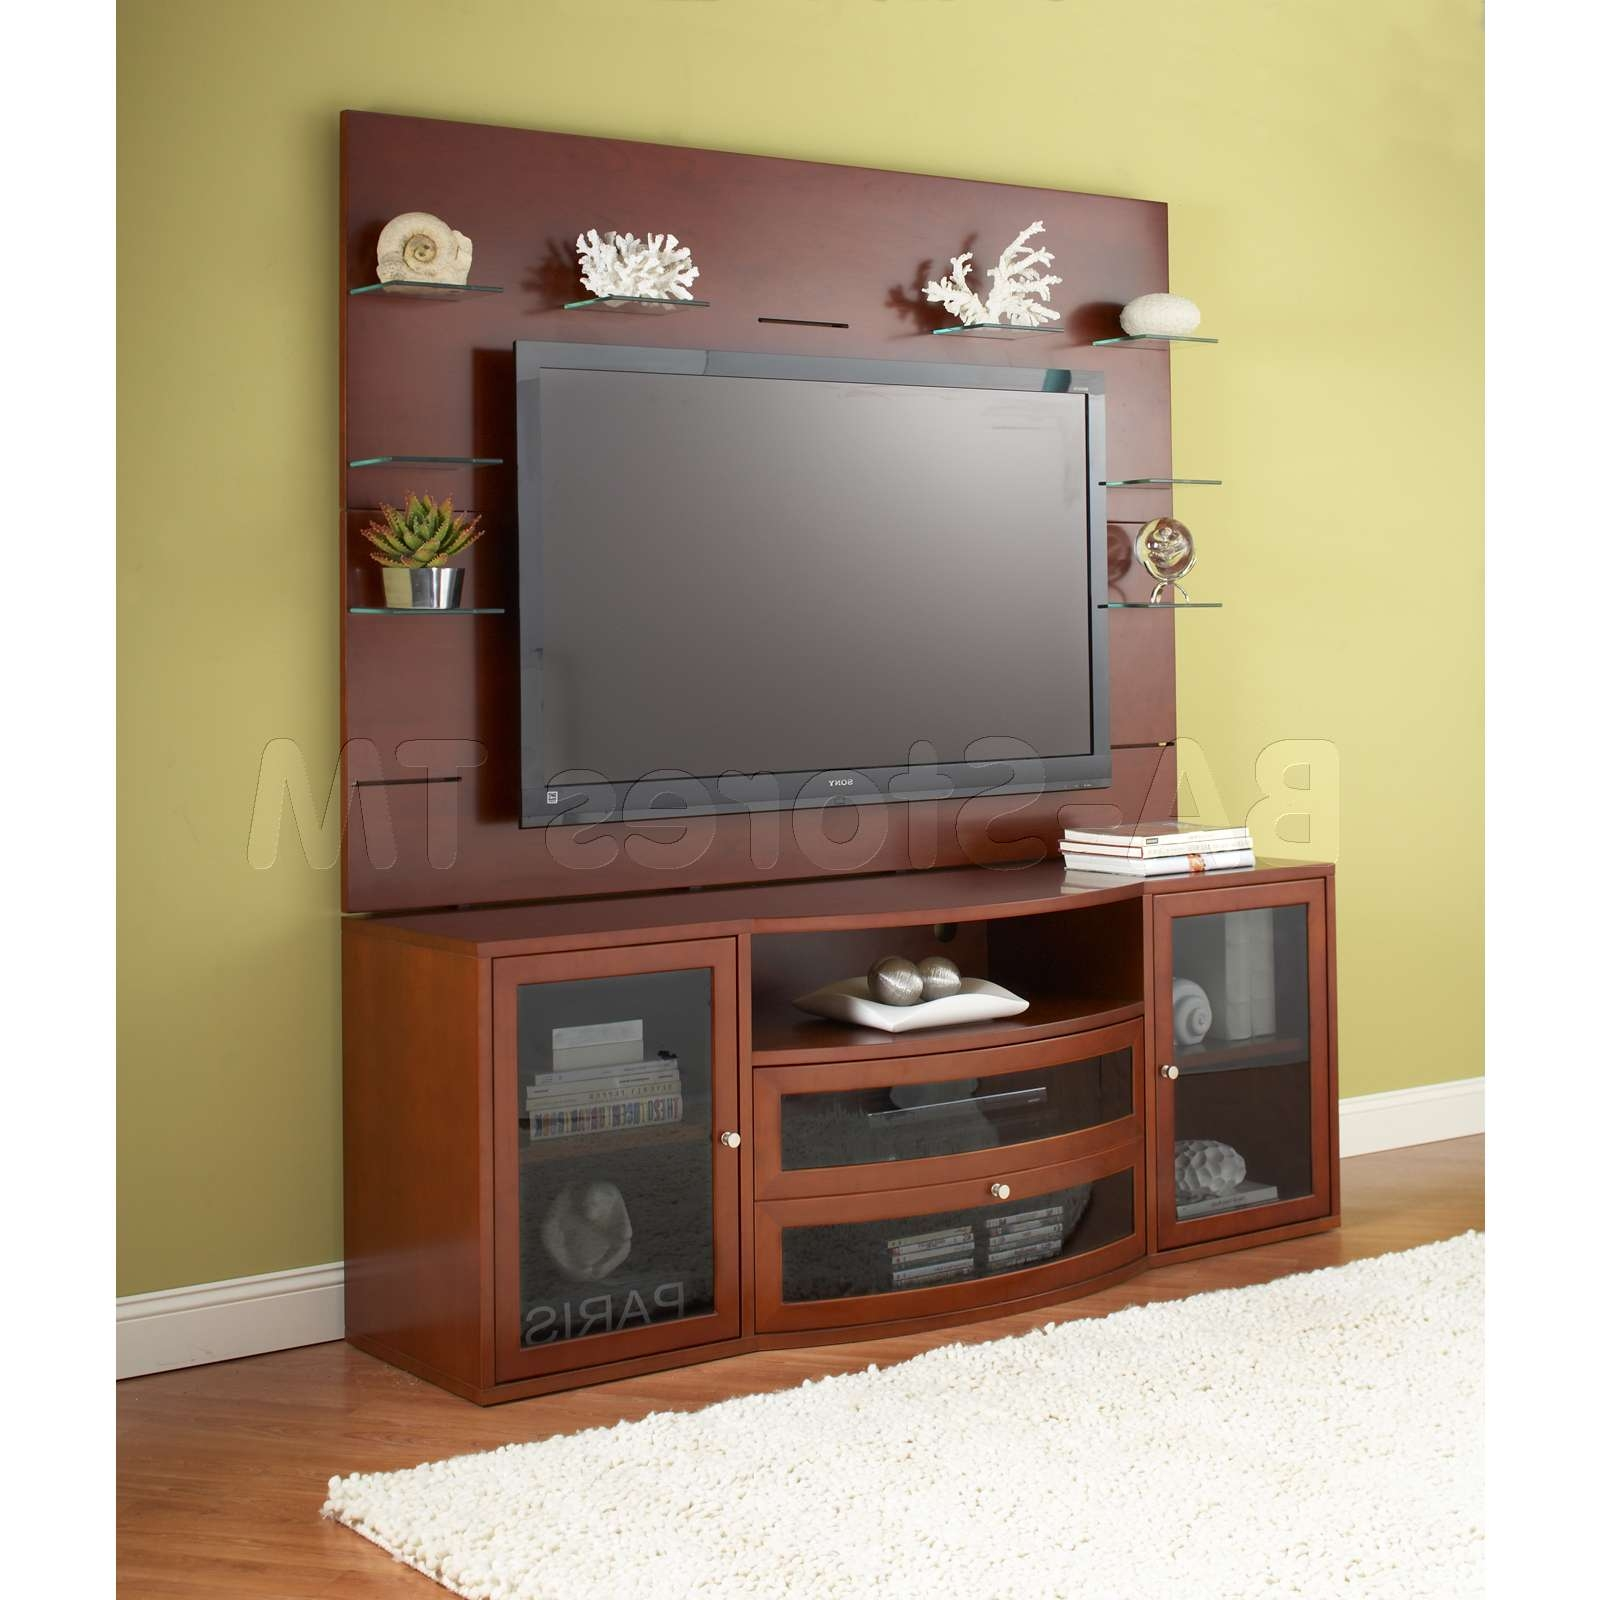 Furnitures 80321 2000 Series Tv Cabinet Unit W Back Panel Stand Pertaining To Tv Stands With Back Panel (View 5 of 15)